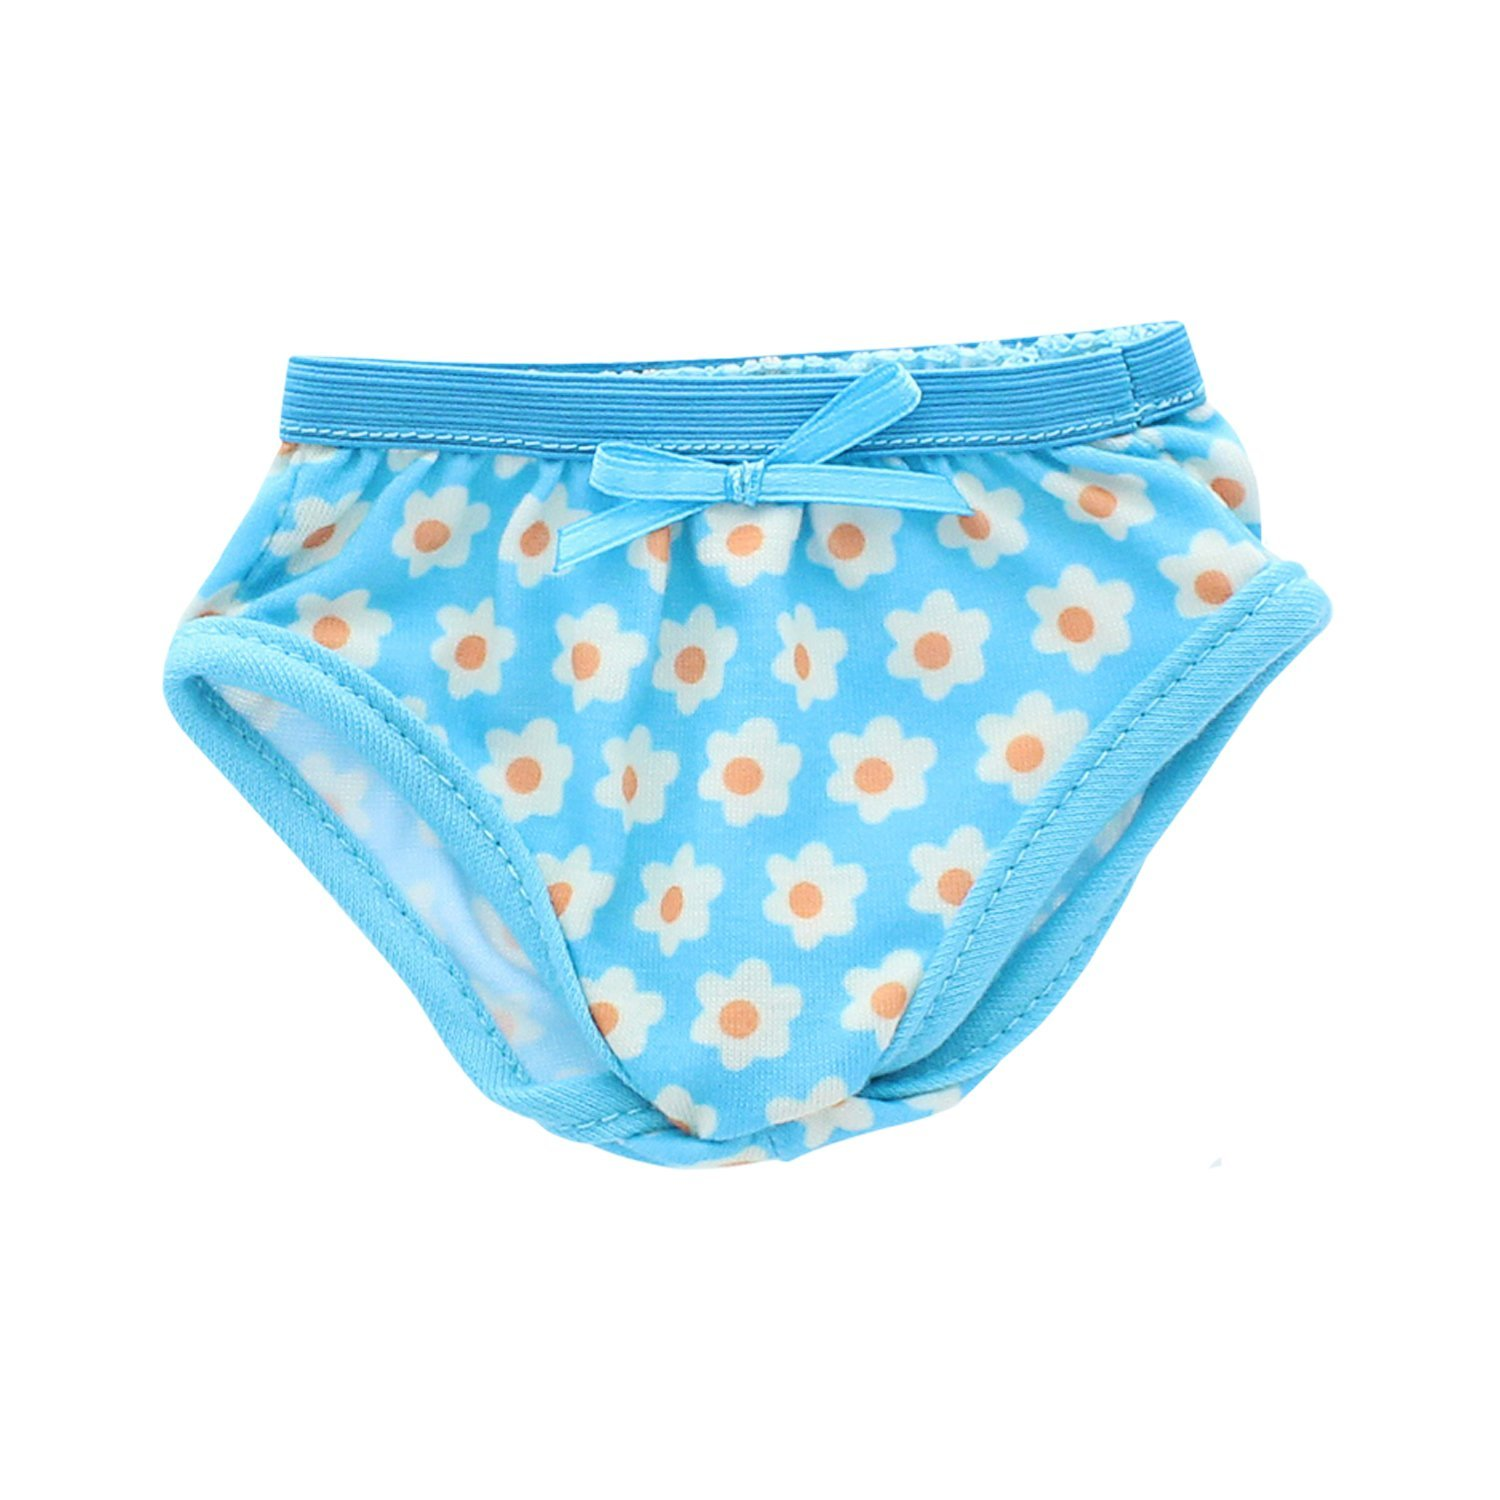 "Blue Floral Panties underwear made for 18/"" American Girl Doll Clothes"